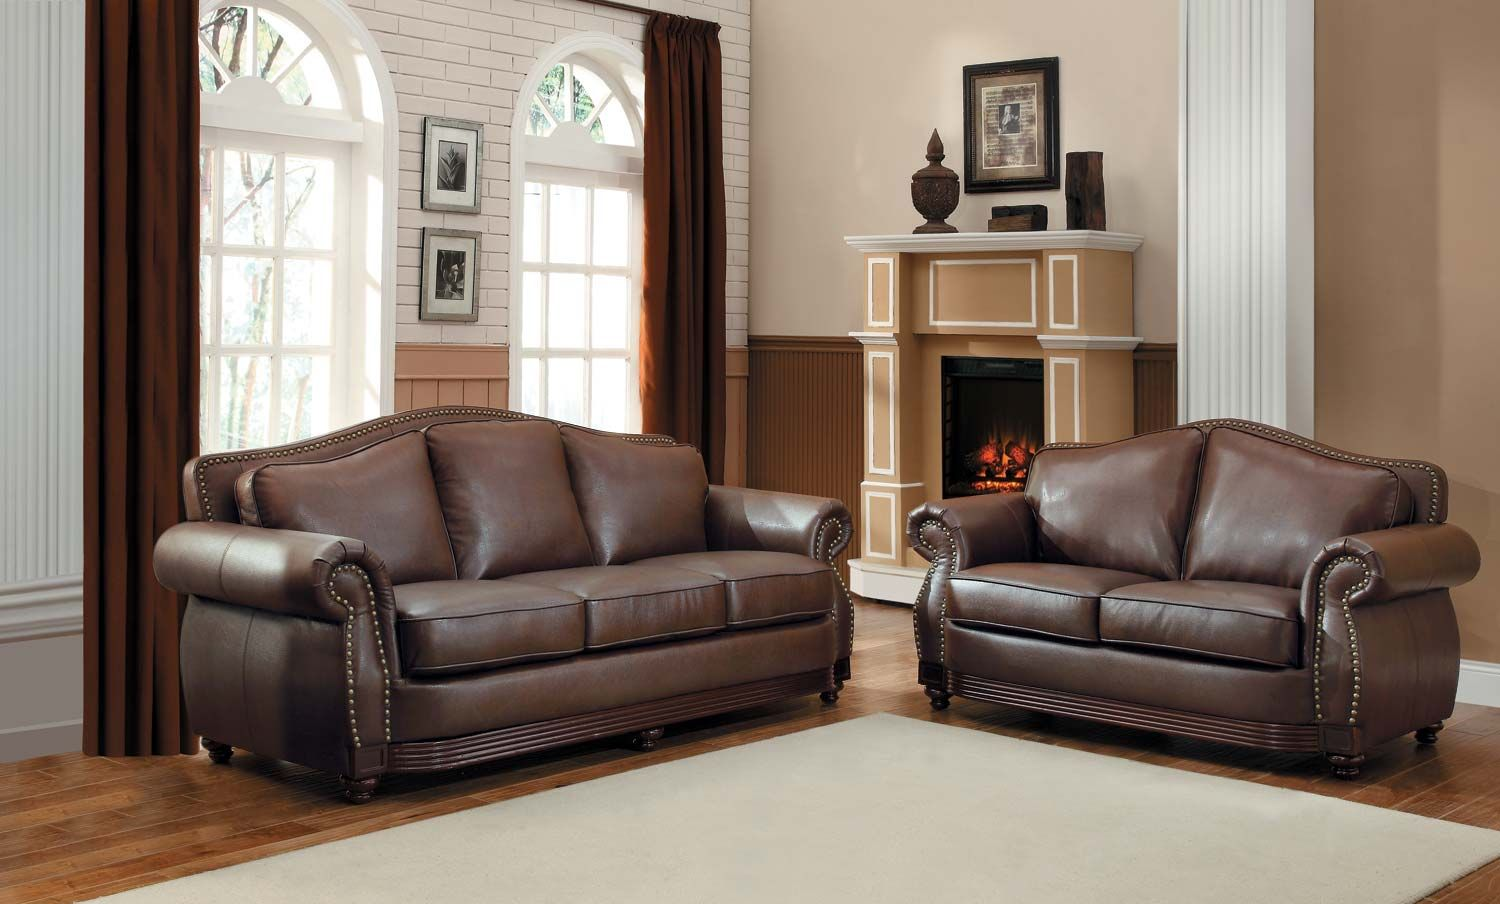 Homelegance Midwood Bonded Leather Sofa Collection Traditional design elements lend and air of refined relaxation to the Midwood Collection. Rolled arms and Camelback design feature nail head accent while the contrasting show wood routed frame accentuates the rich brown Bonded leather match covering in this traditional seating group.